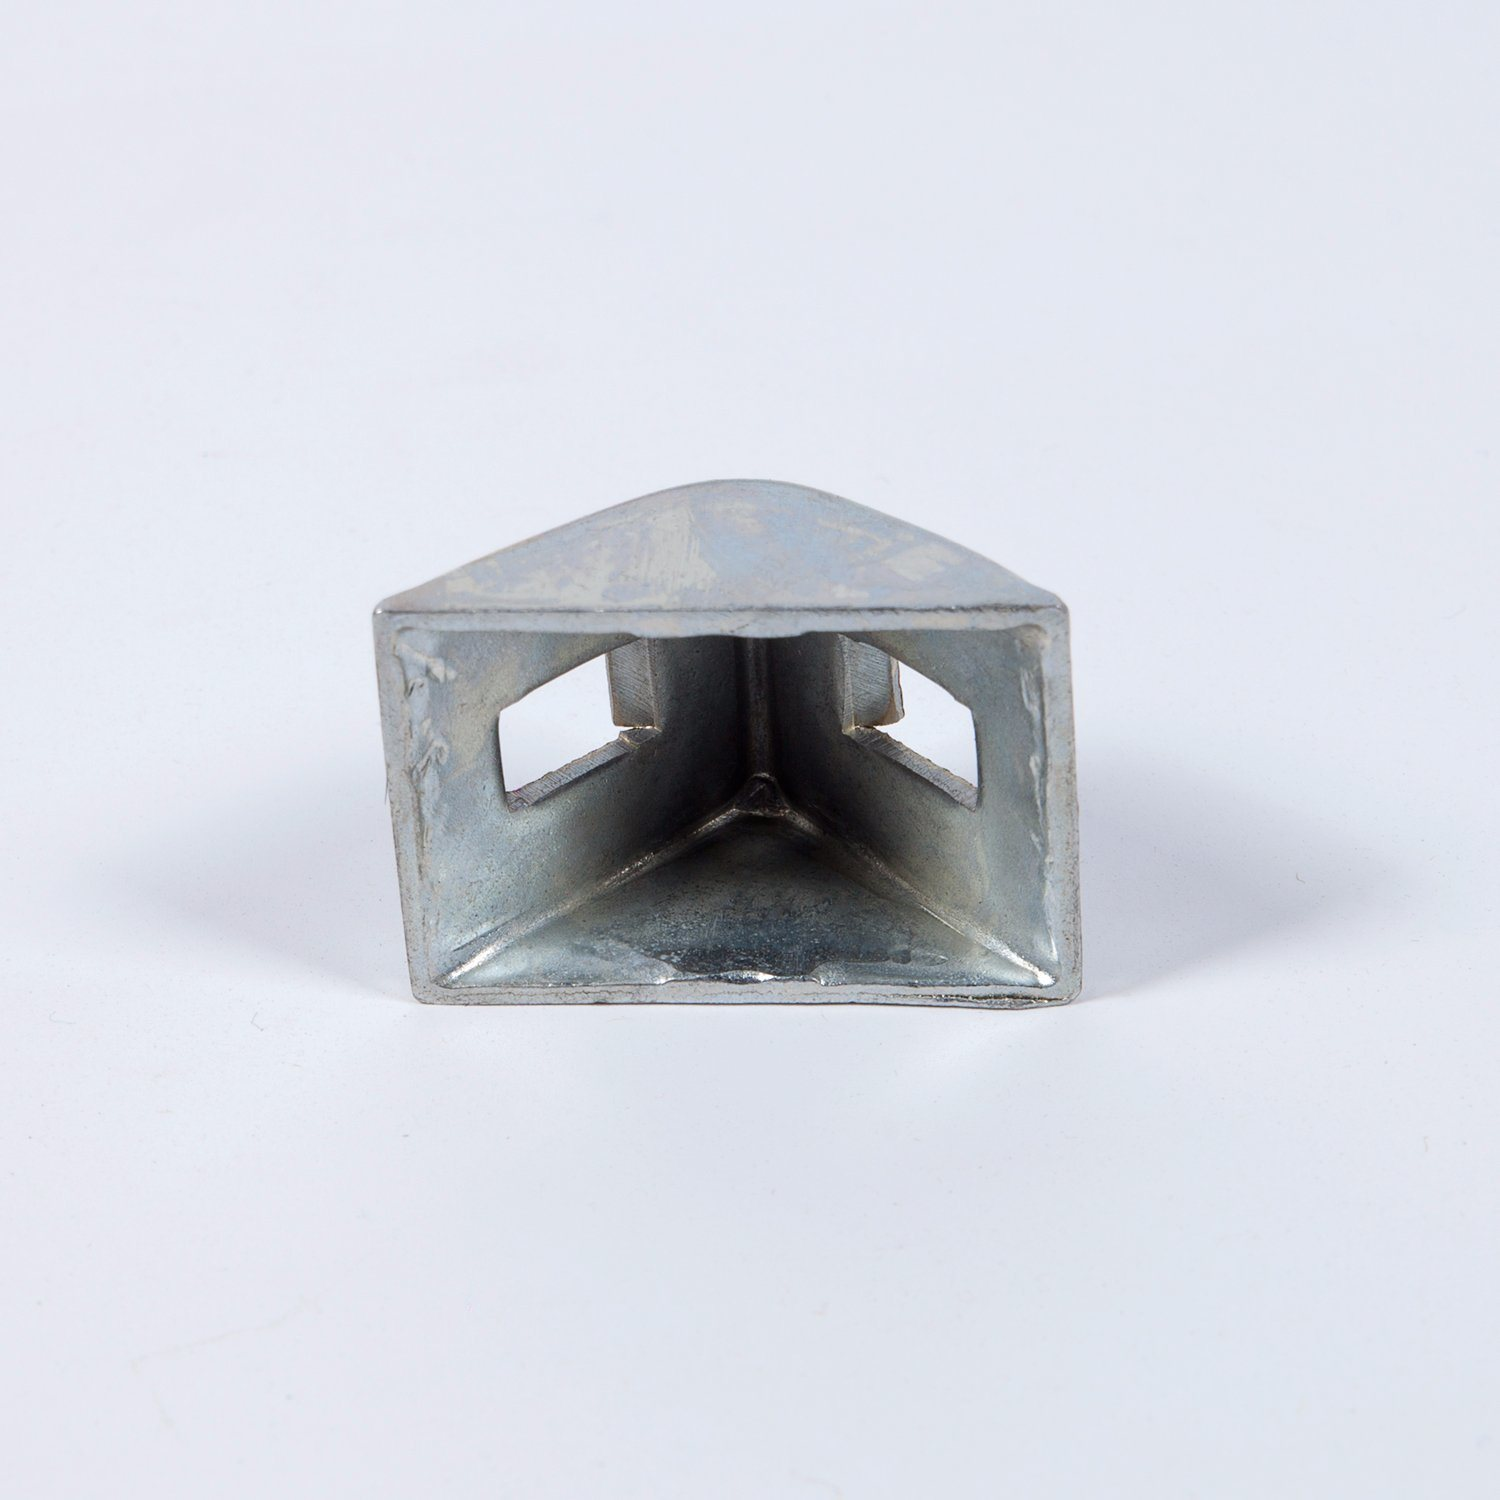 T Section Connection Angle Aluminum Die-Casting Parts (30-30)